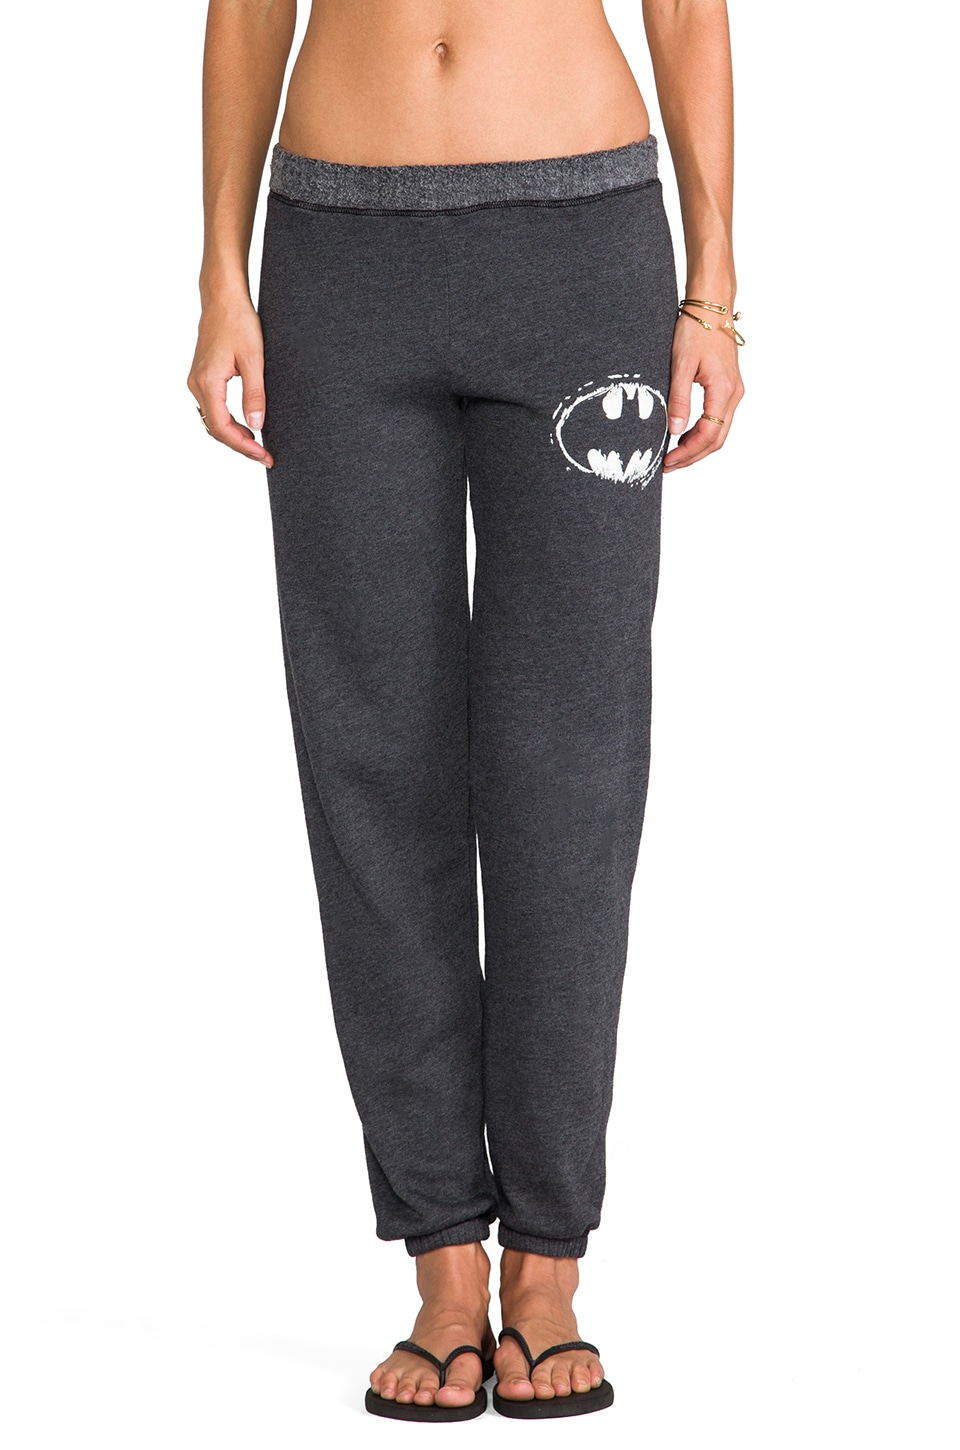 Lauren Moshi Gia Small Batman Long Sweat Pant in Black